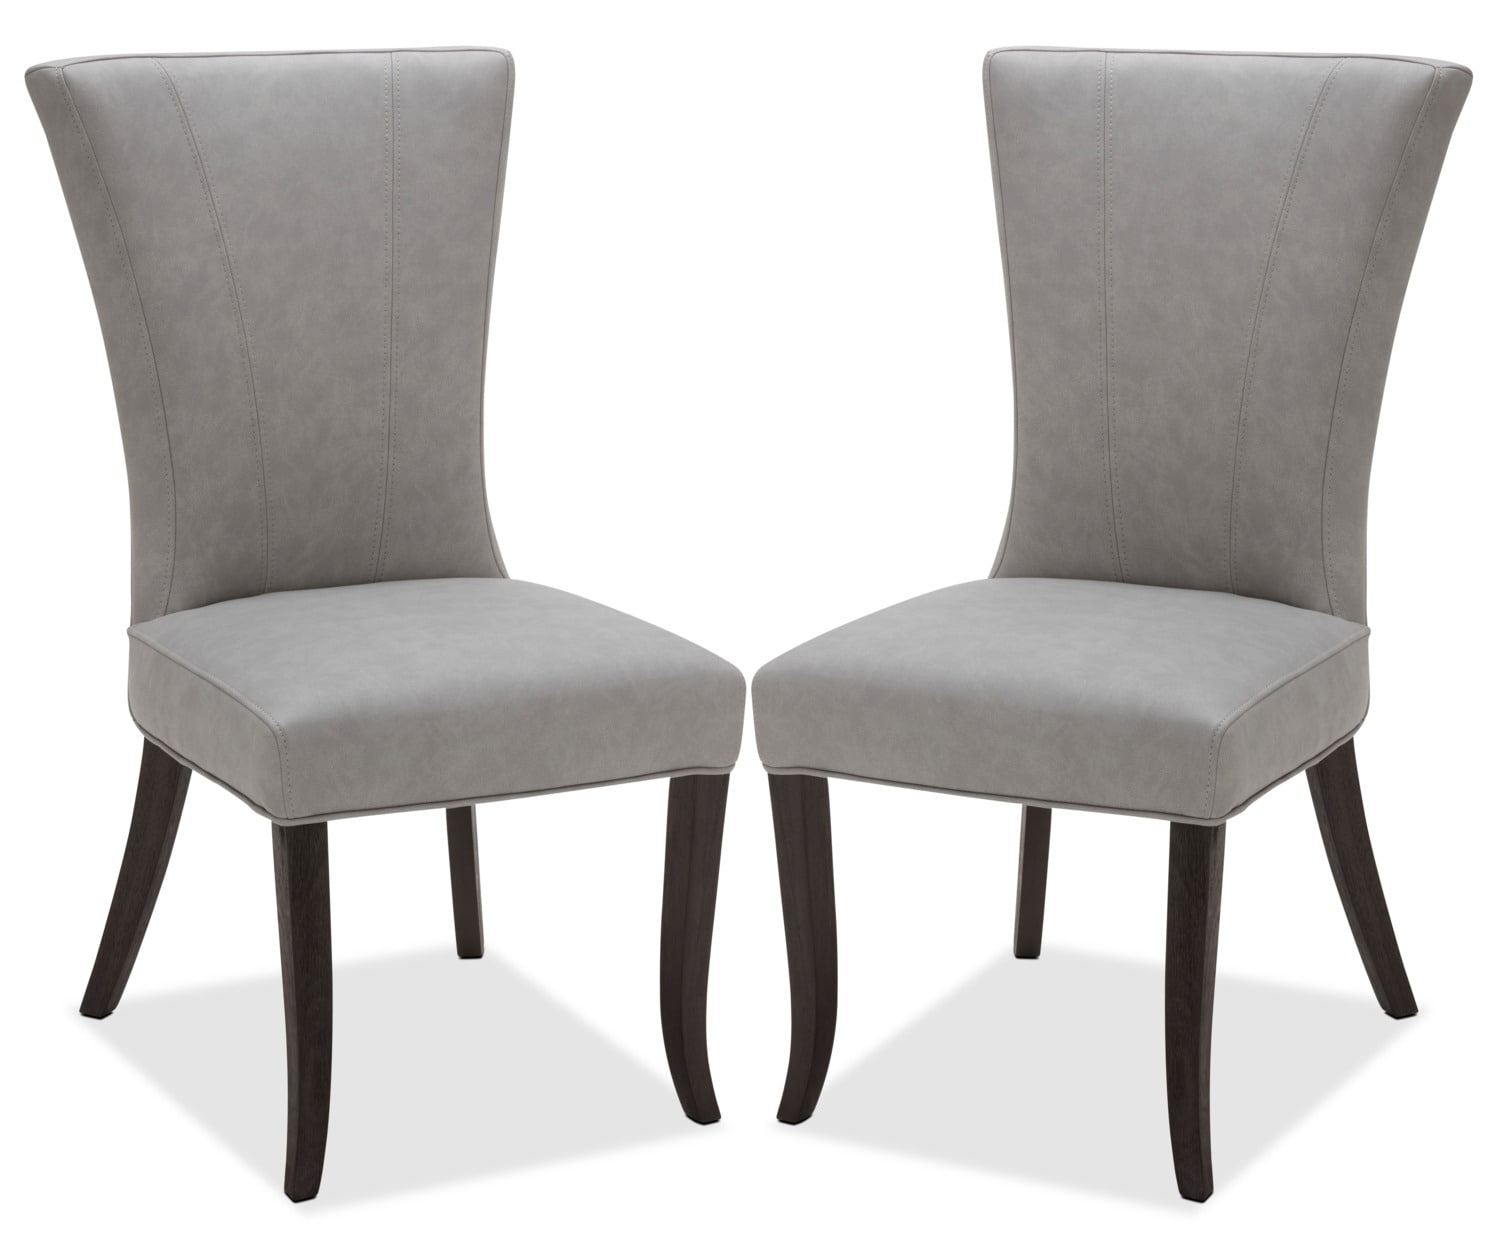 Bree Dining Chair, Set of 2 – Taupe